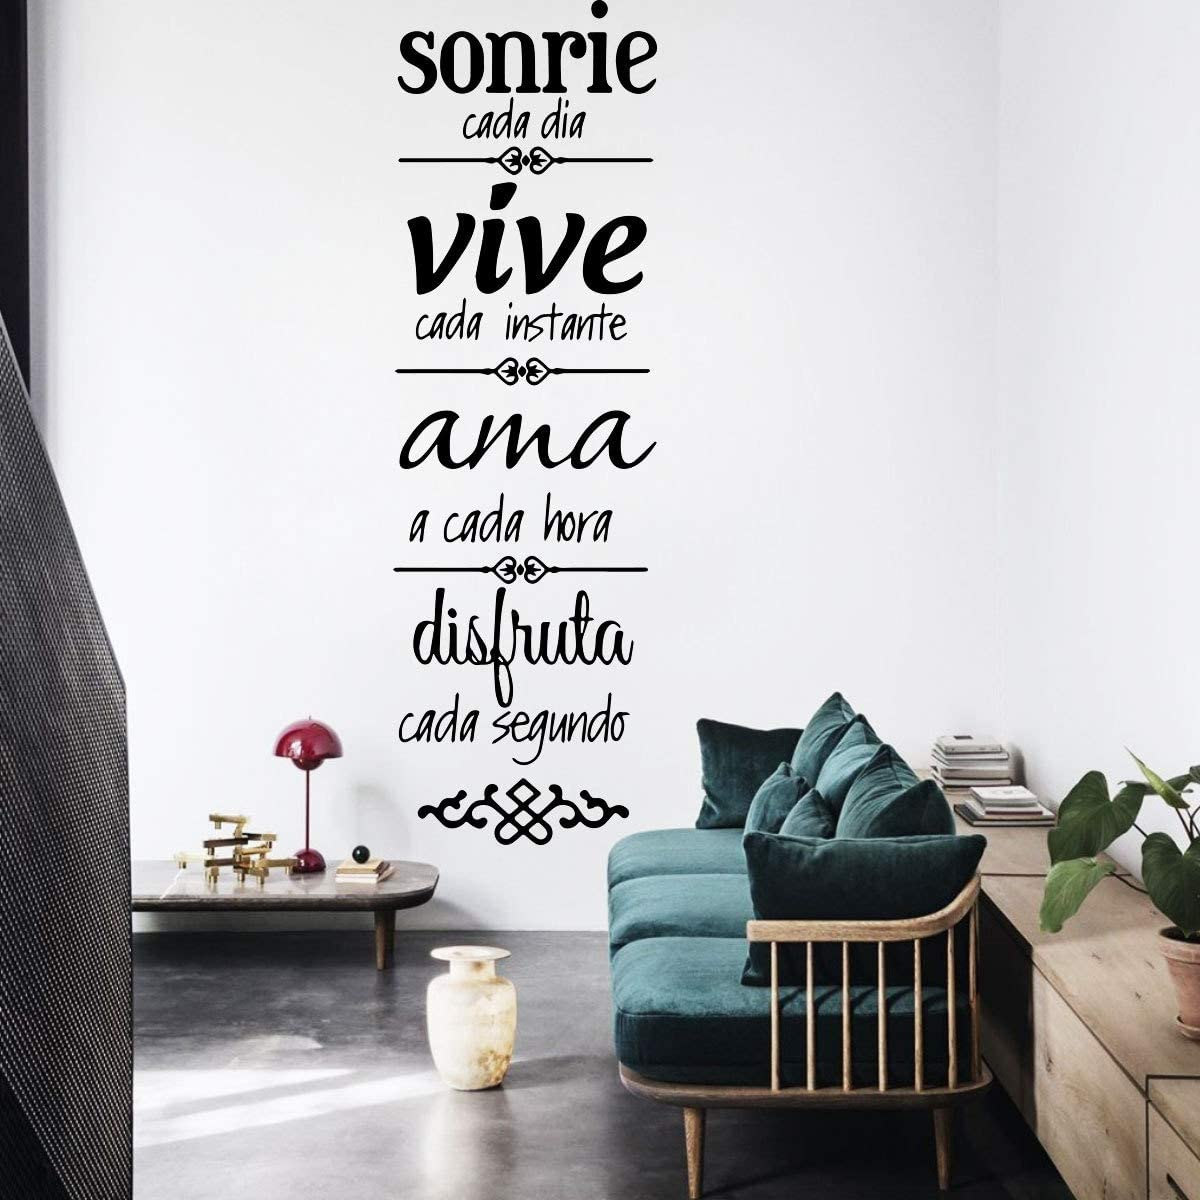 Sonrie Vive AMA Wall Decal Stickers , Vinyl Verses Wall Decor, Home Background Decor Wall Art Sticker Spanish Family Rules Wall Decals Stickers Sayings Words Art Decor